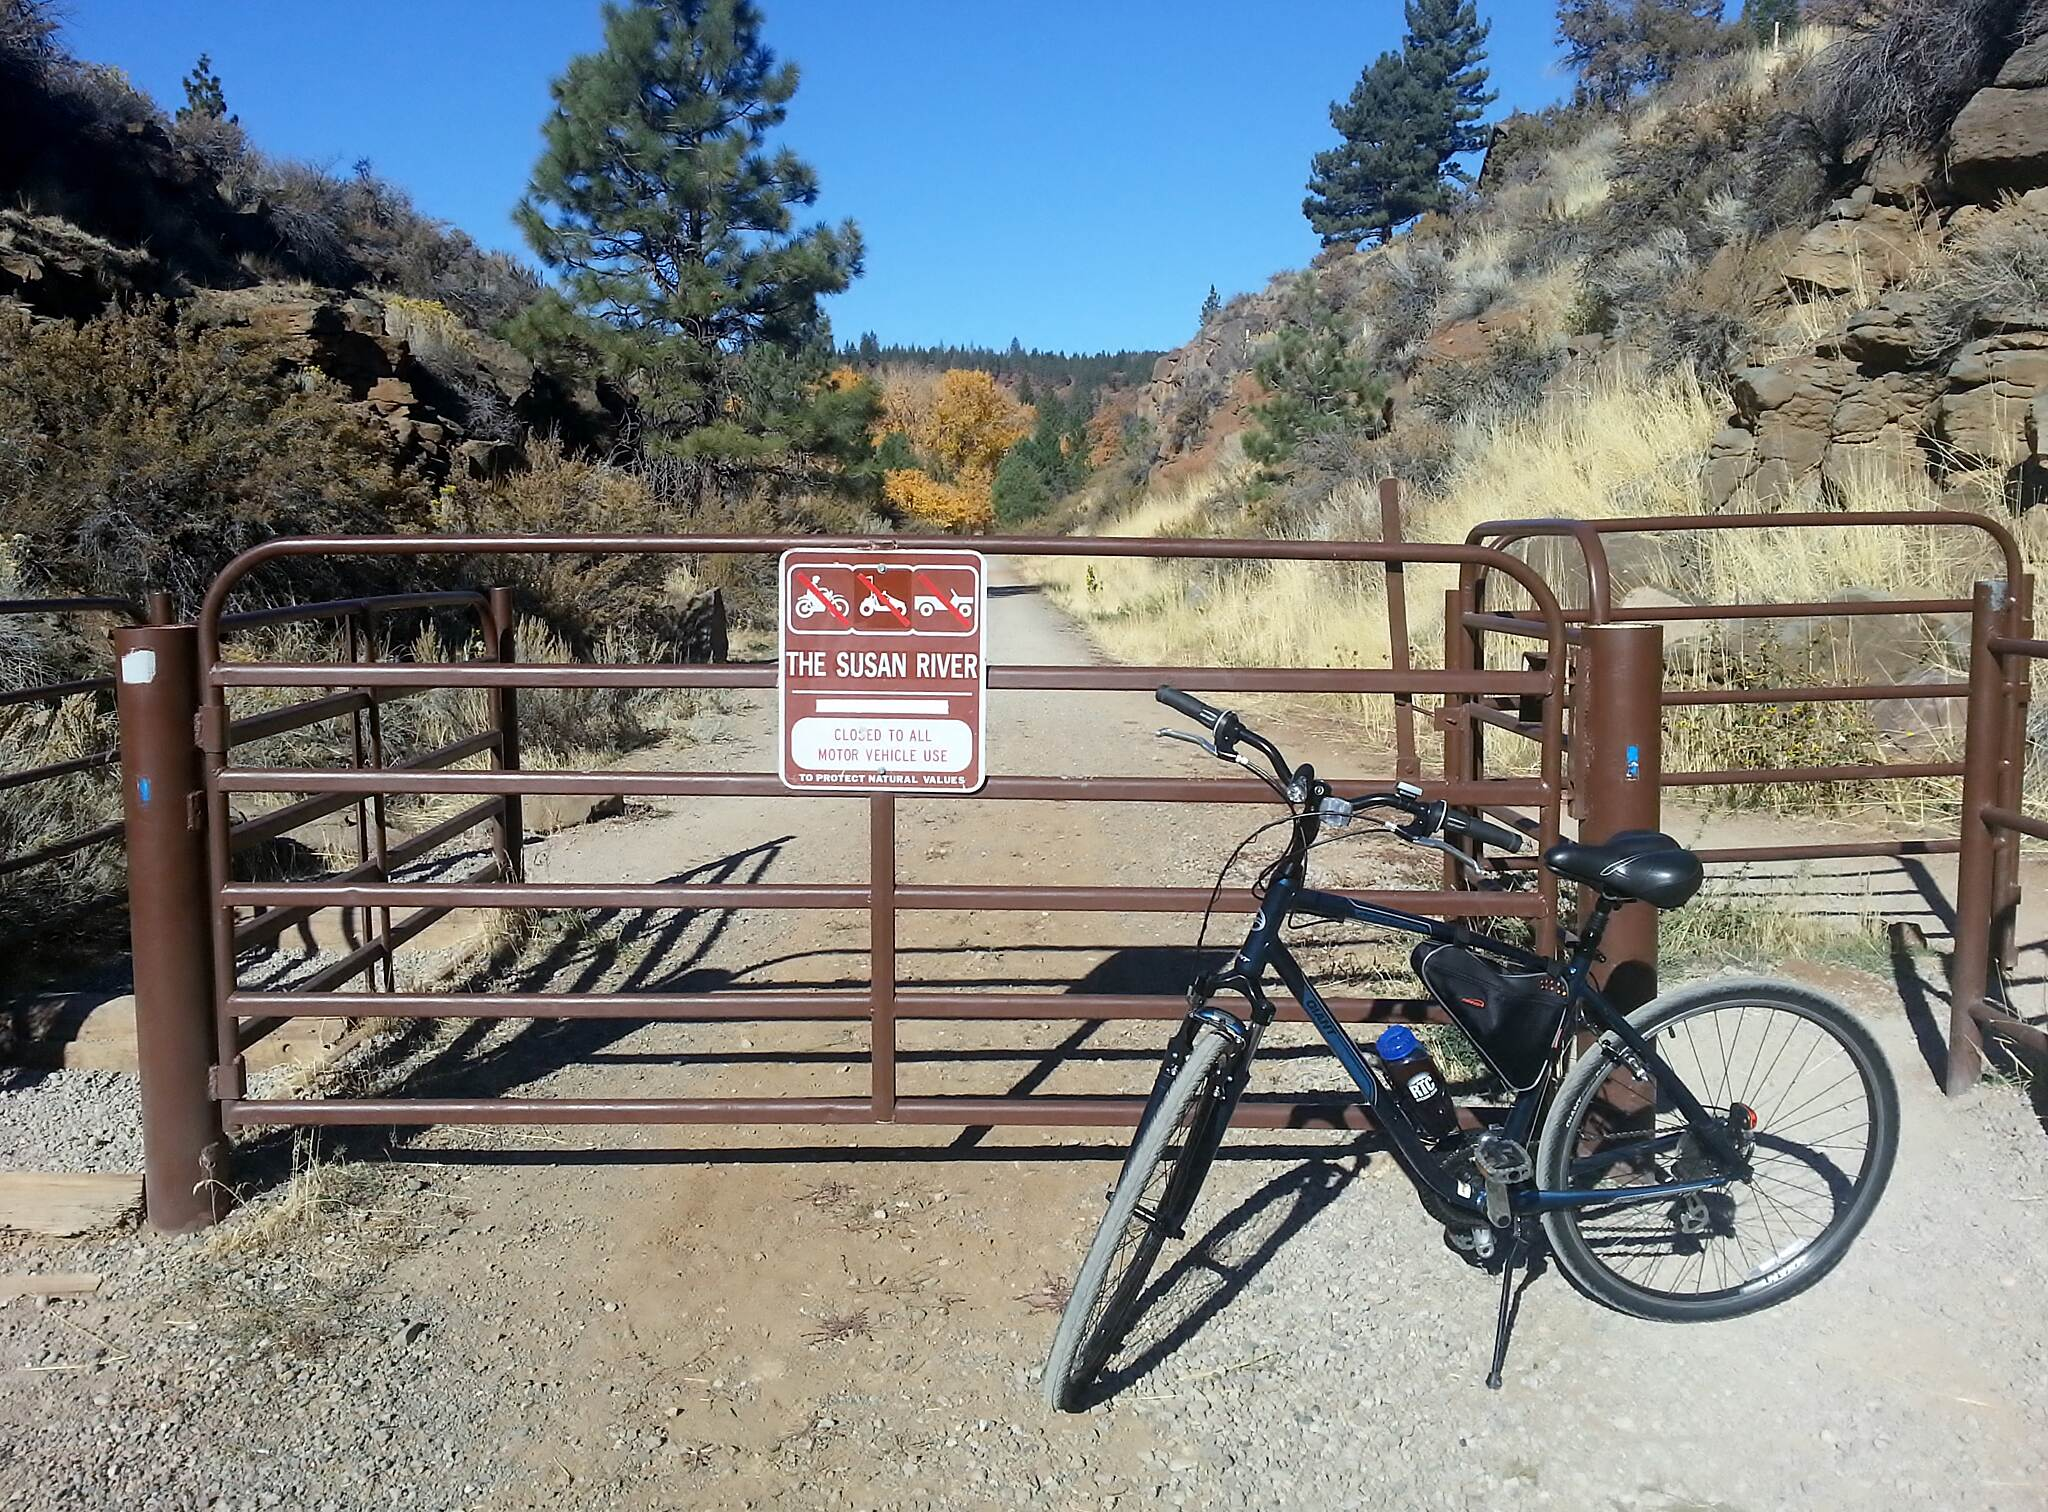 Bizz Johnson National Recreation Trail Near Susanville.